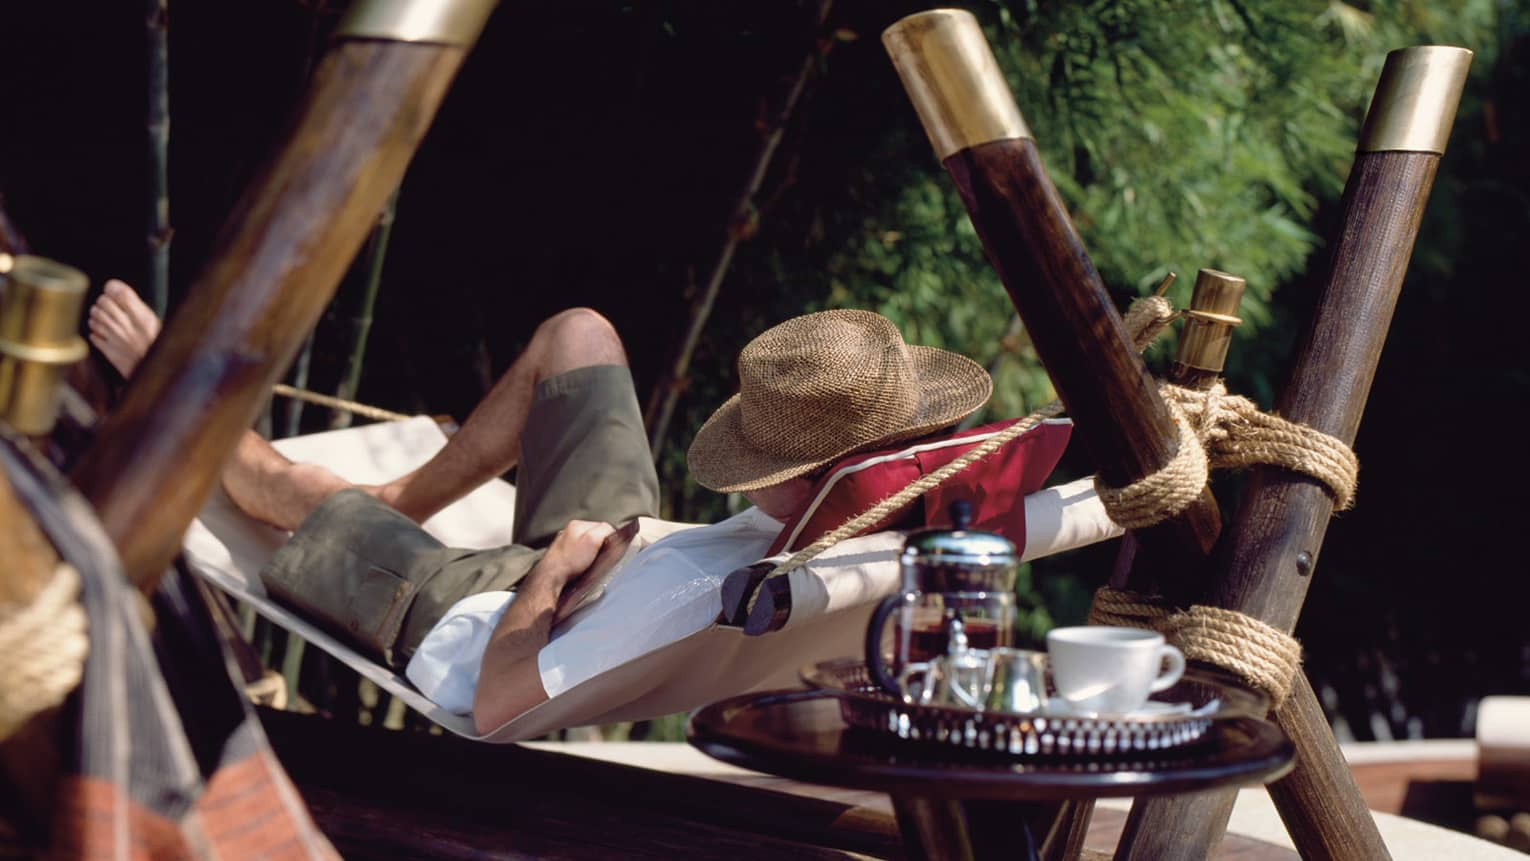 Man takes a nap in a handmade hammock with a straw sunhat shielding his face